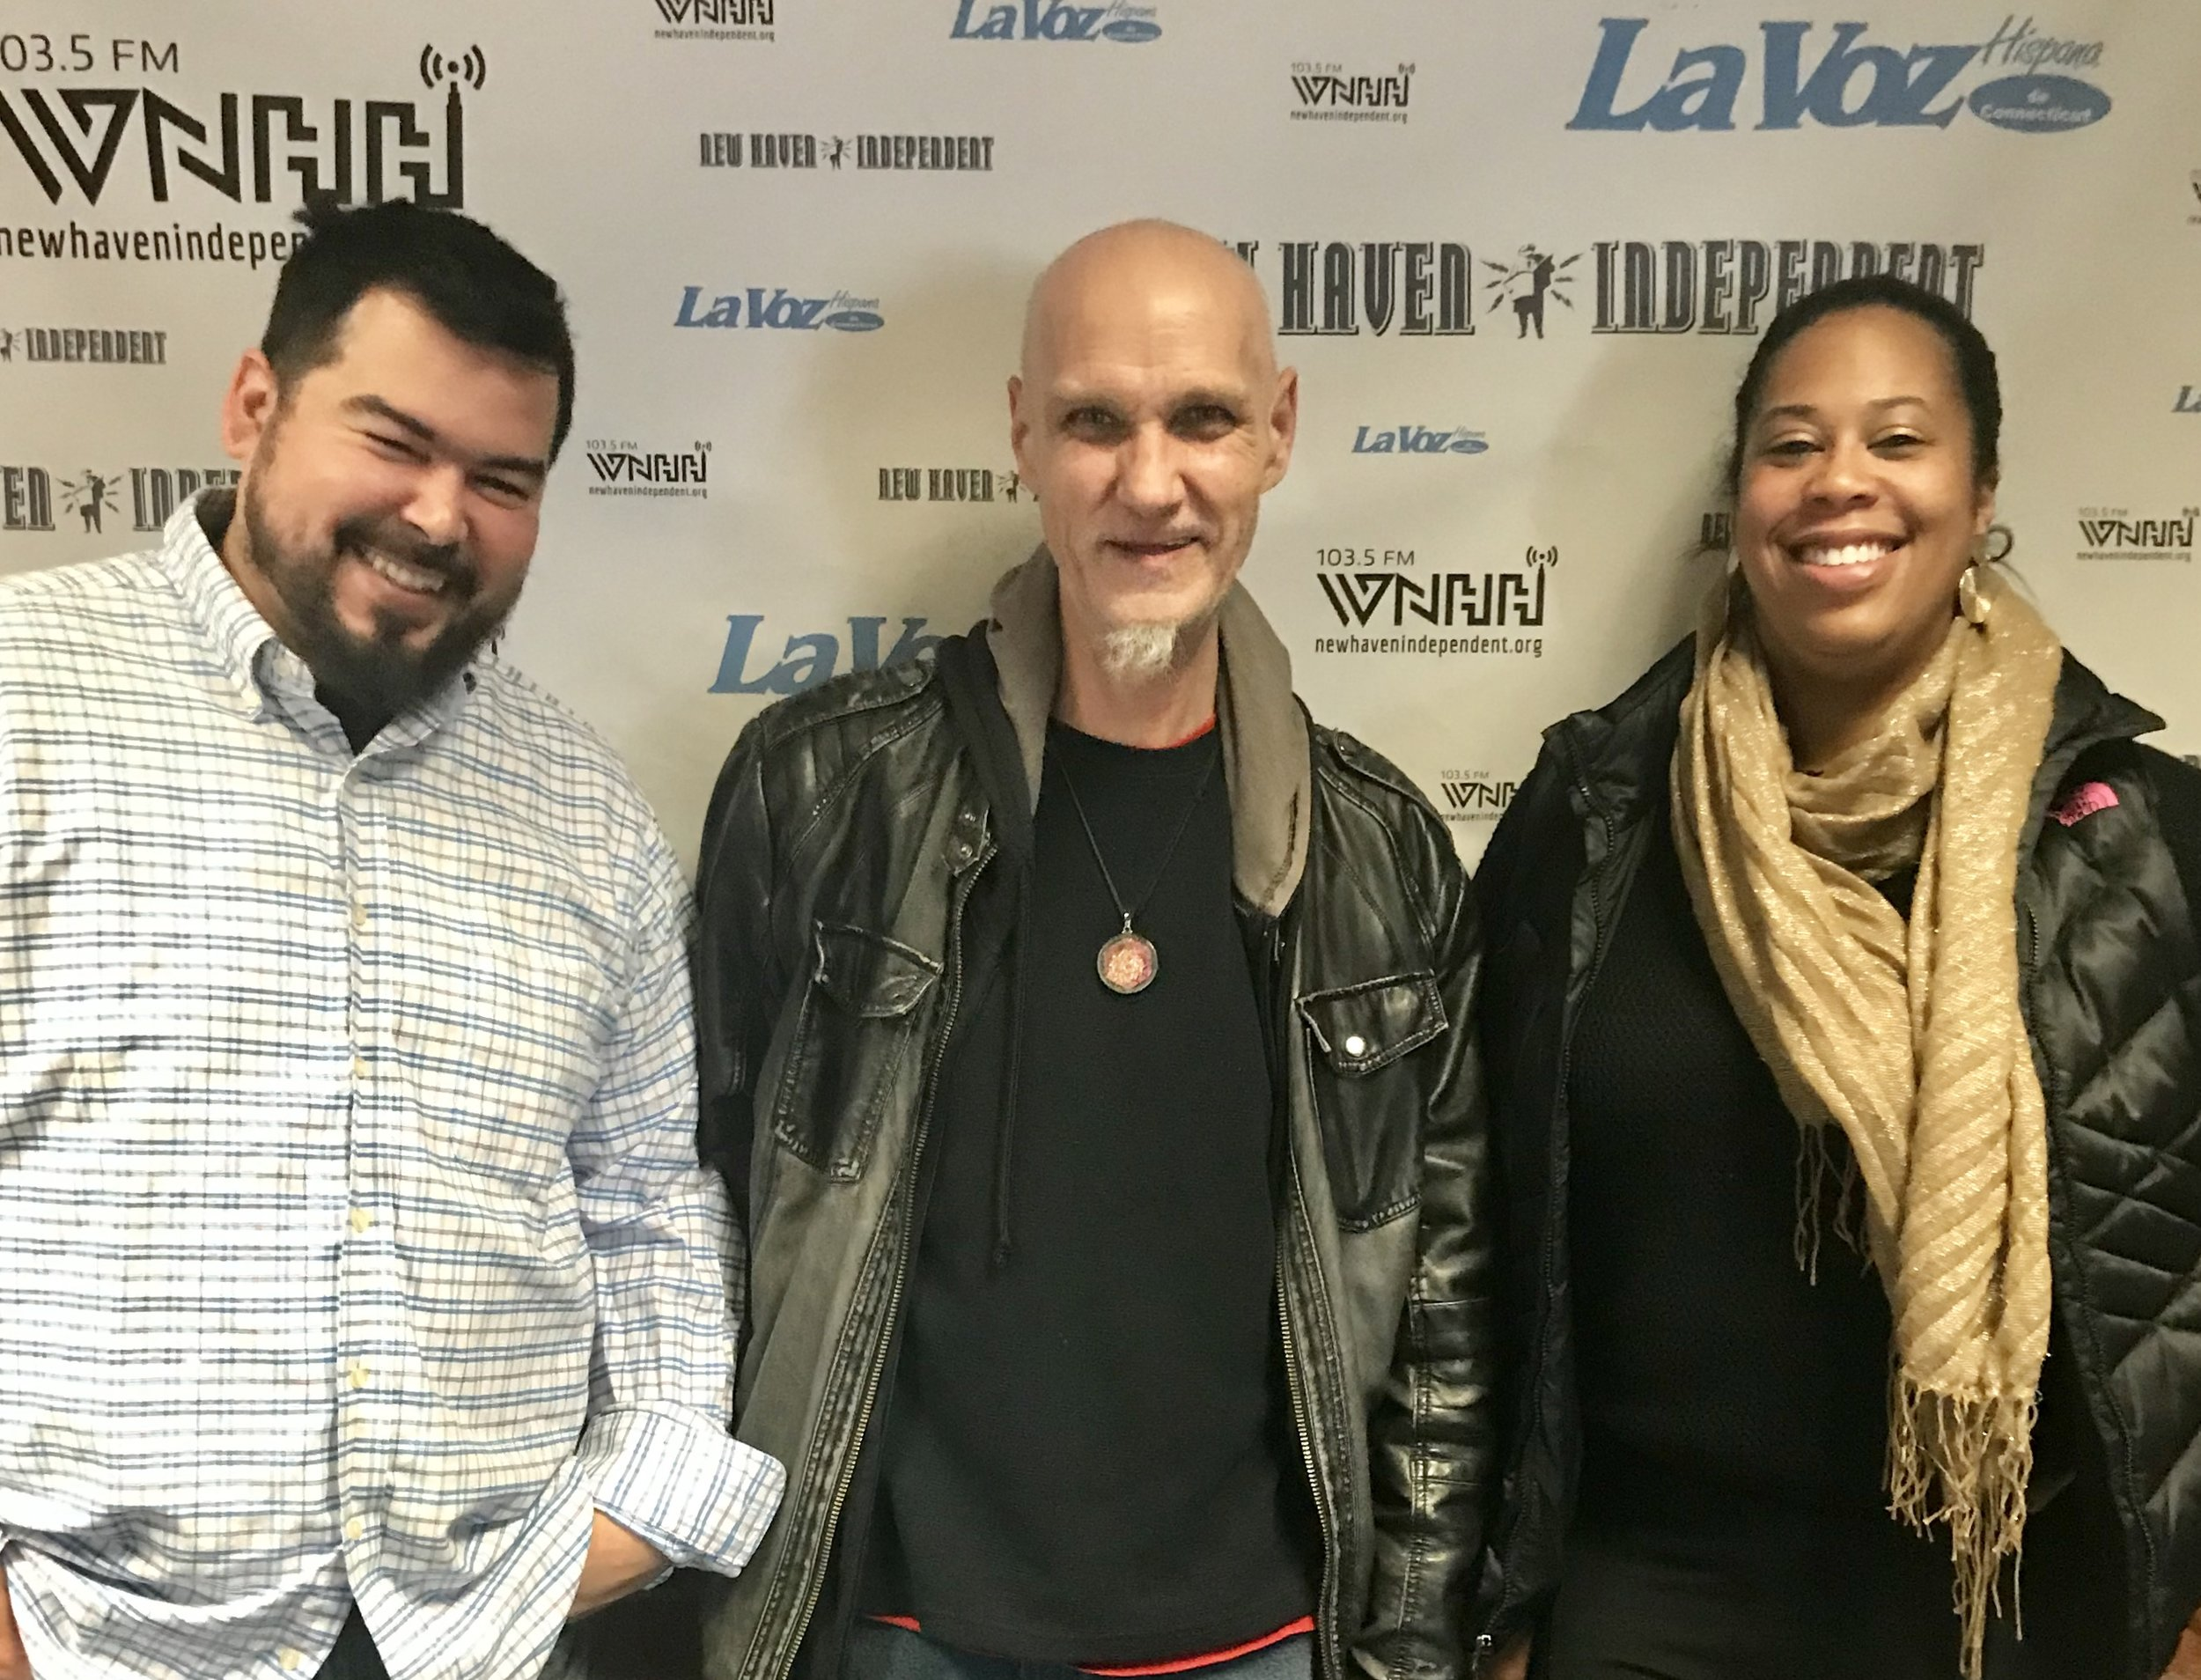 Joe LaChance, Kebra Smith-Bolden & Uncle Lou give us an update on the current state of weed.